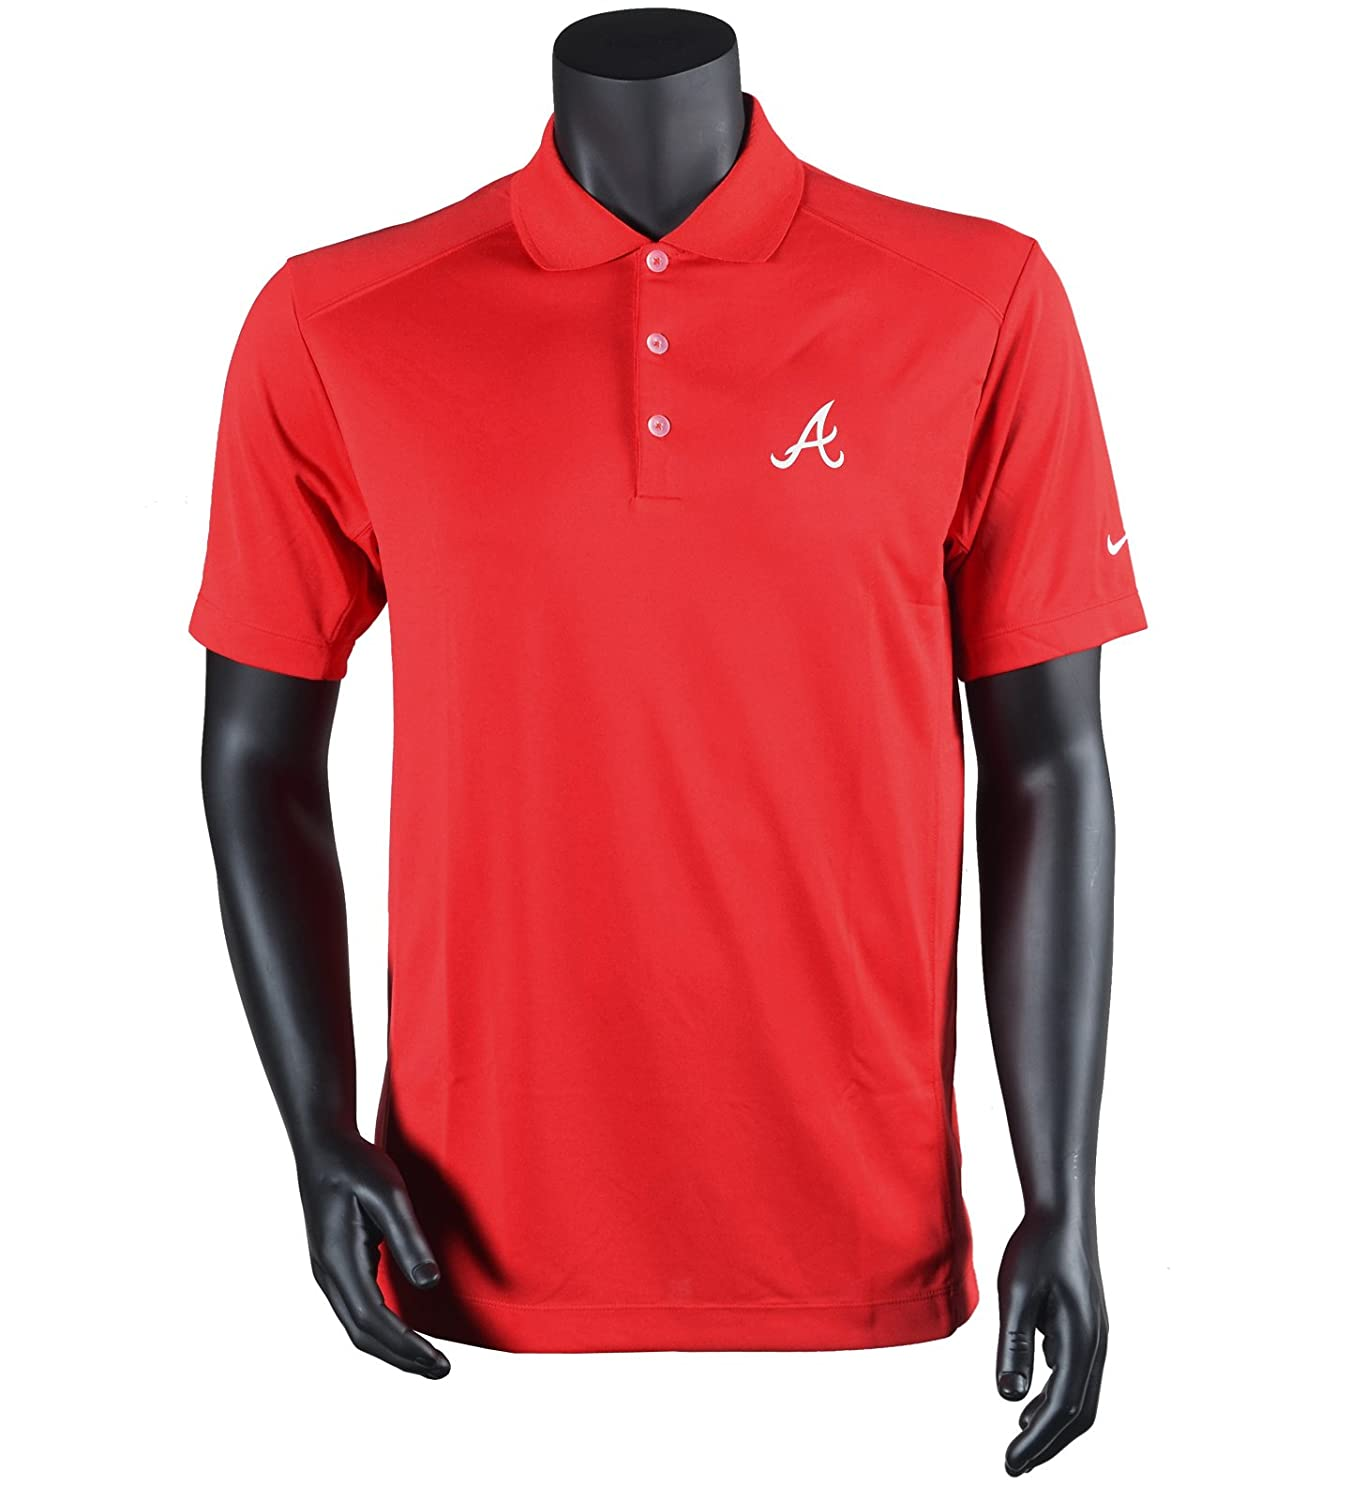 6d55feeba907 Amazon.com  Nike Golf Dri-Fit Victory Polo  Clothing